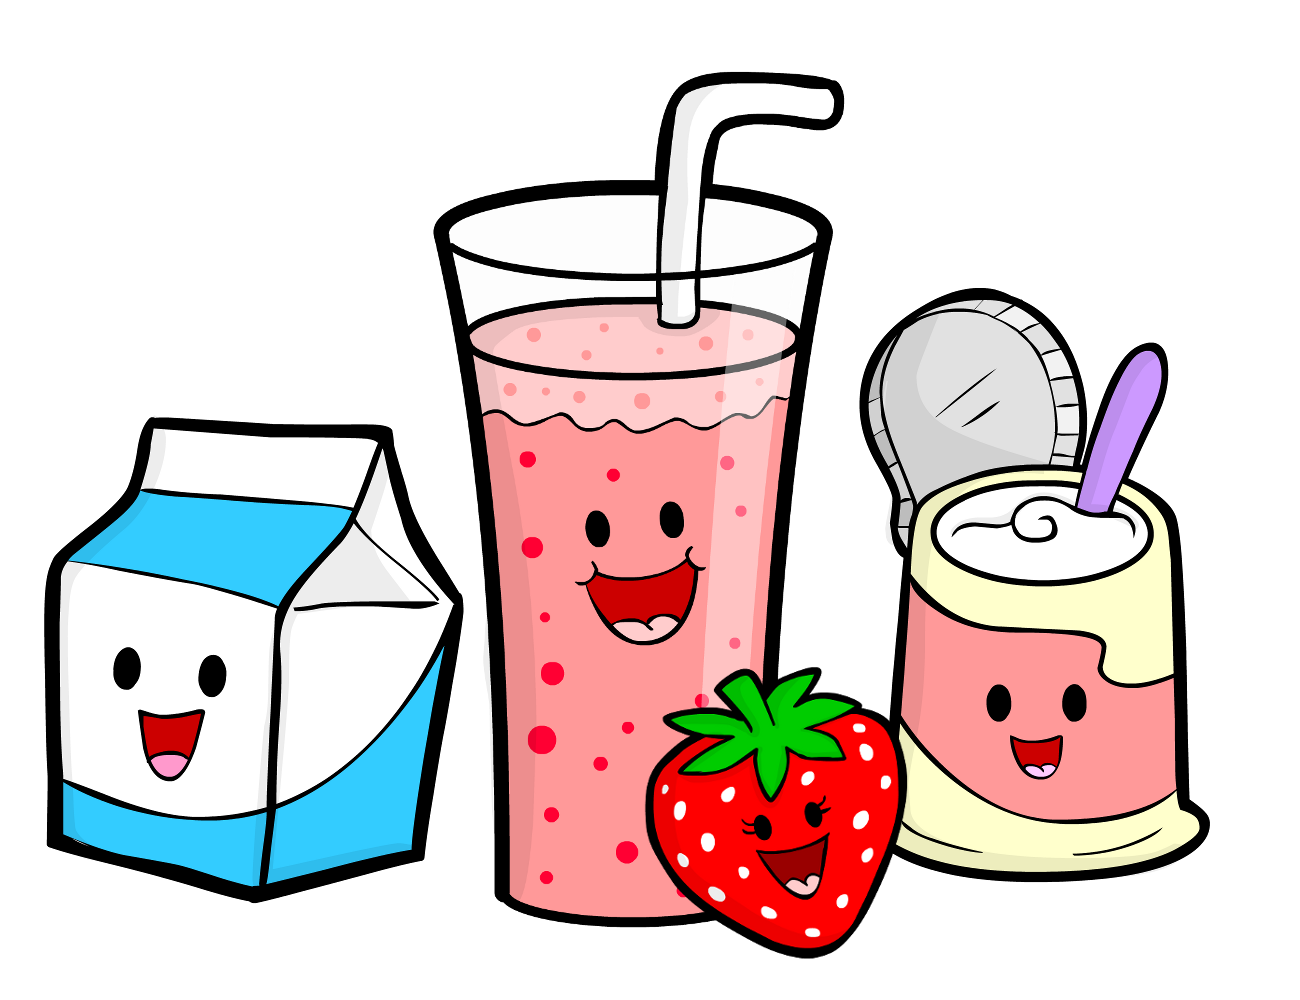 Draw clipart healthy child. Cartoon cooking smoothie recipe